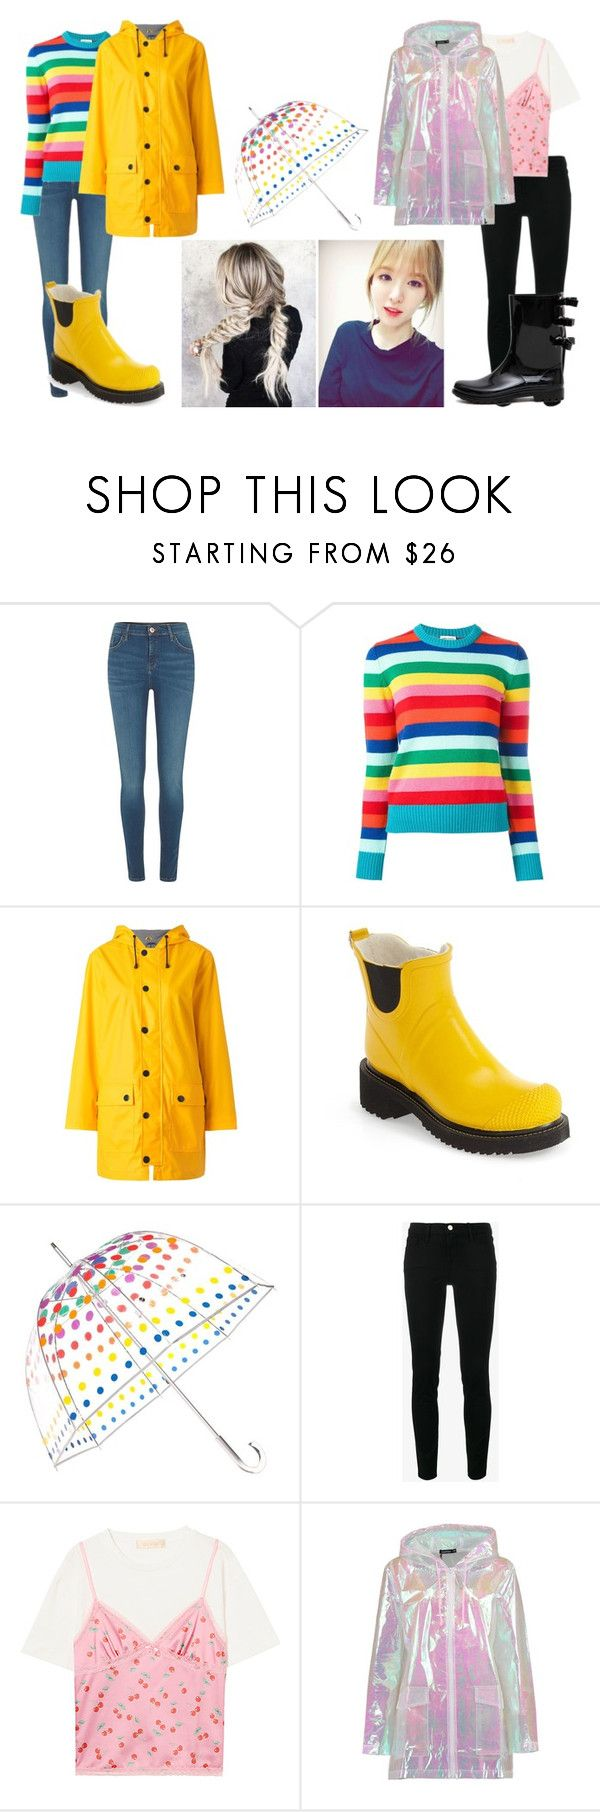 """""""Wanda; dancing in the rain"""" by dovelywoozi ❤ liked on Polyvore featuring River Island, Yves Saint Laurent, Petit Bateau, Ilse Jacobsen Hornbaek, Totes, Frame, Boohoo and RED Valentino"""